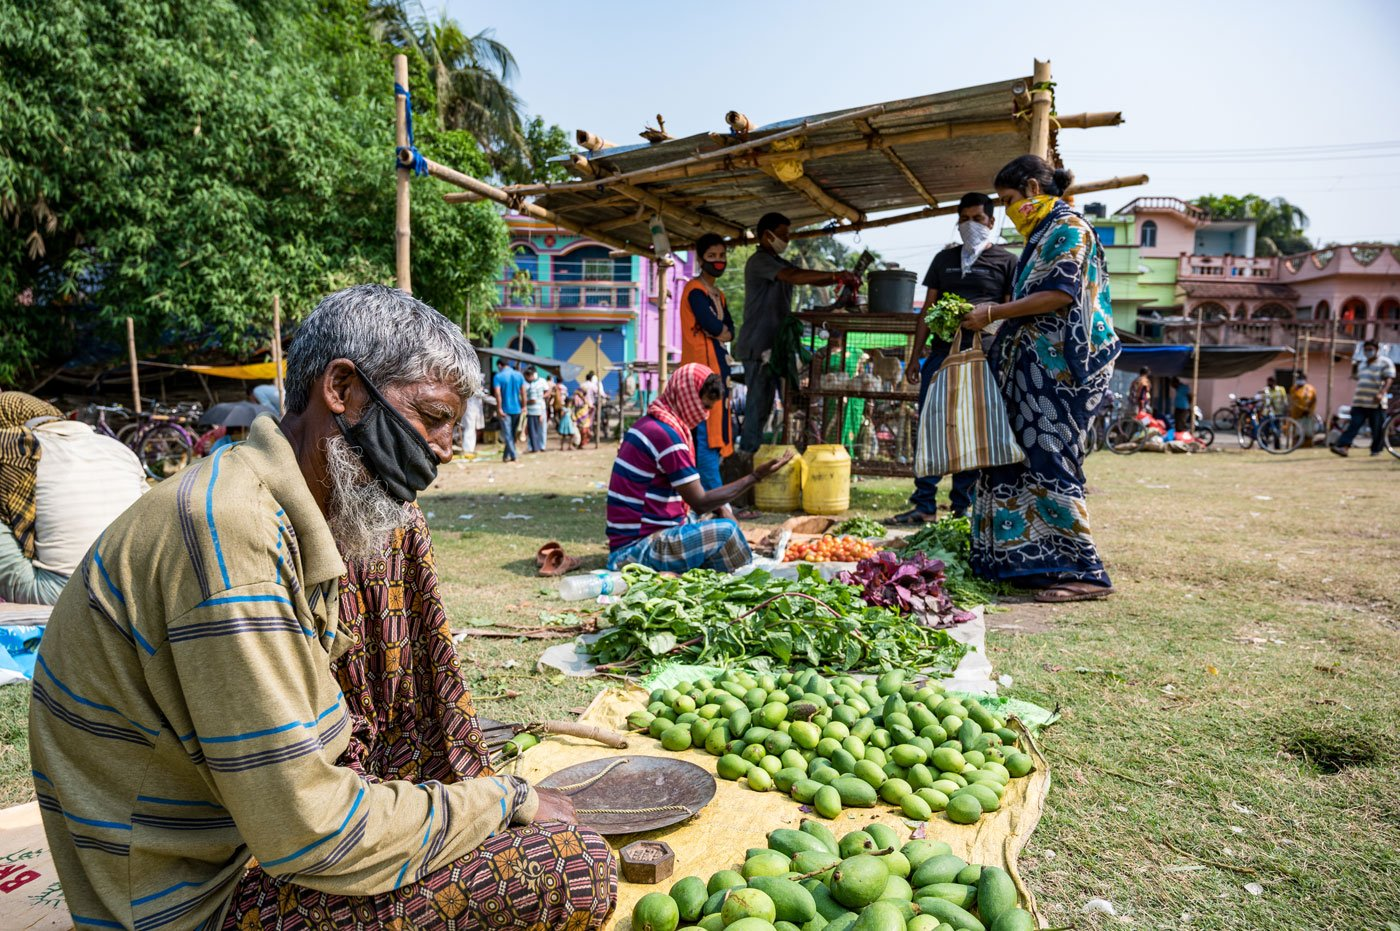 Sadhu Shaikh, 56, has found a spot just off the filed, away from where the other vendors are sitting. He is selling mangoes and vegetables from his own small farmland.